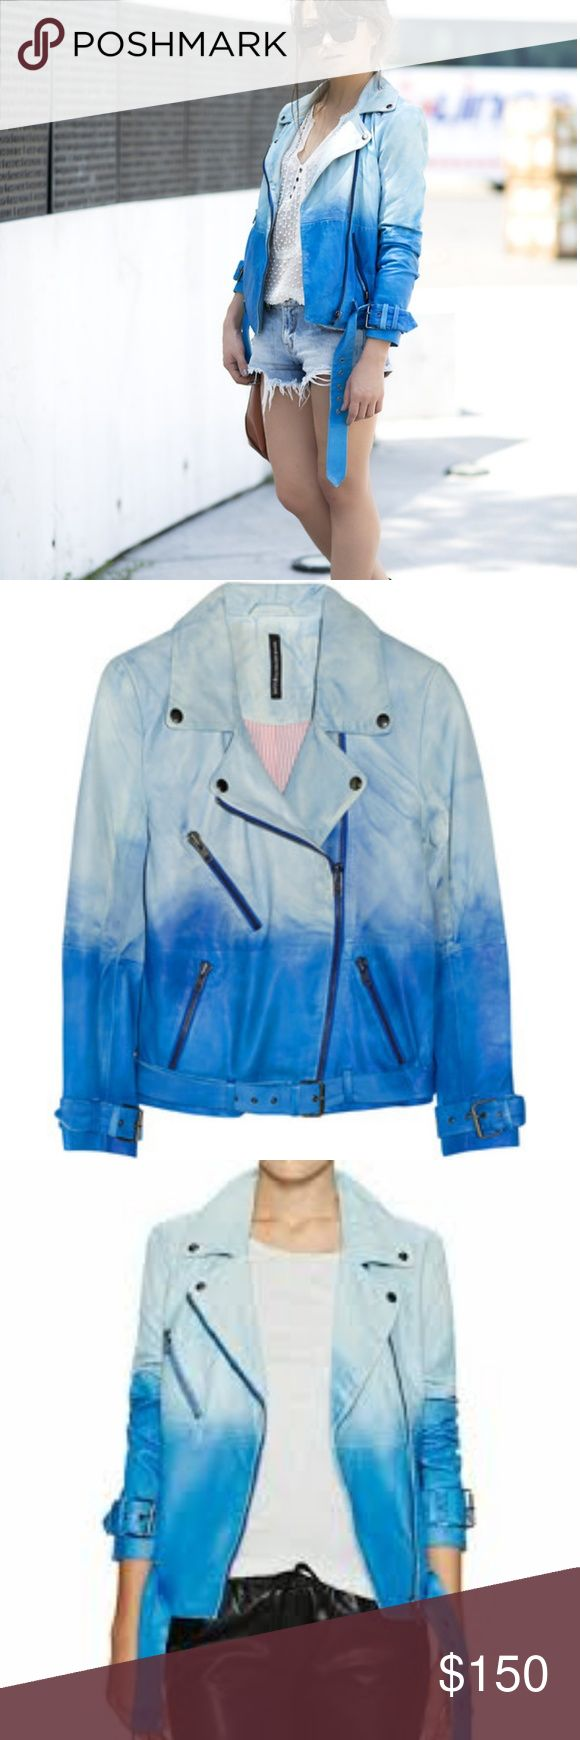 W118 walter baker blue ombre leather moto jacket m W118 Walter baker Blue ombre leather Moto jacket Size medium Worn 4 times excellent used condition Like muubaa Vince and veda $135 via Paipal W118 by Walter Baker Jackets & Coats